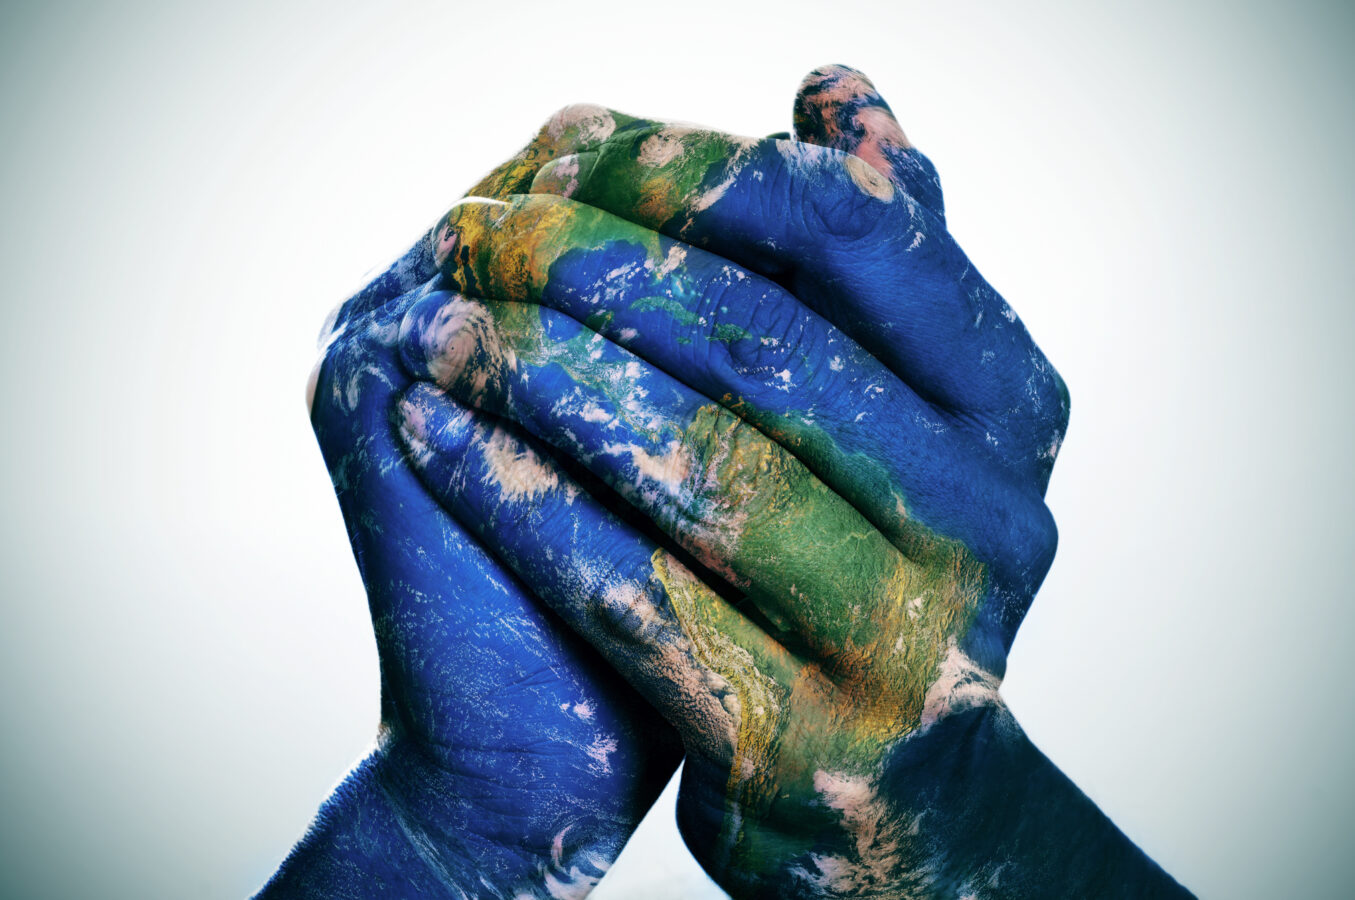 World map painted on hands to show cultural diversity.